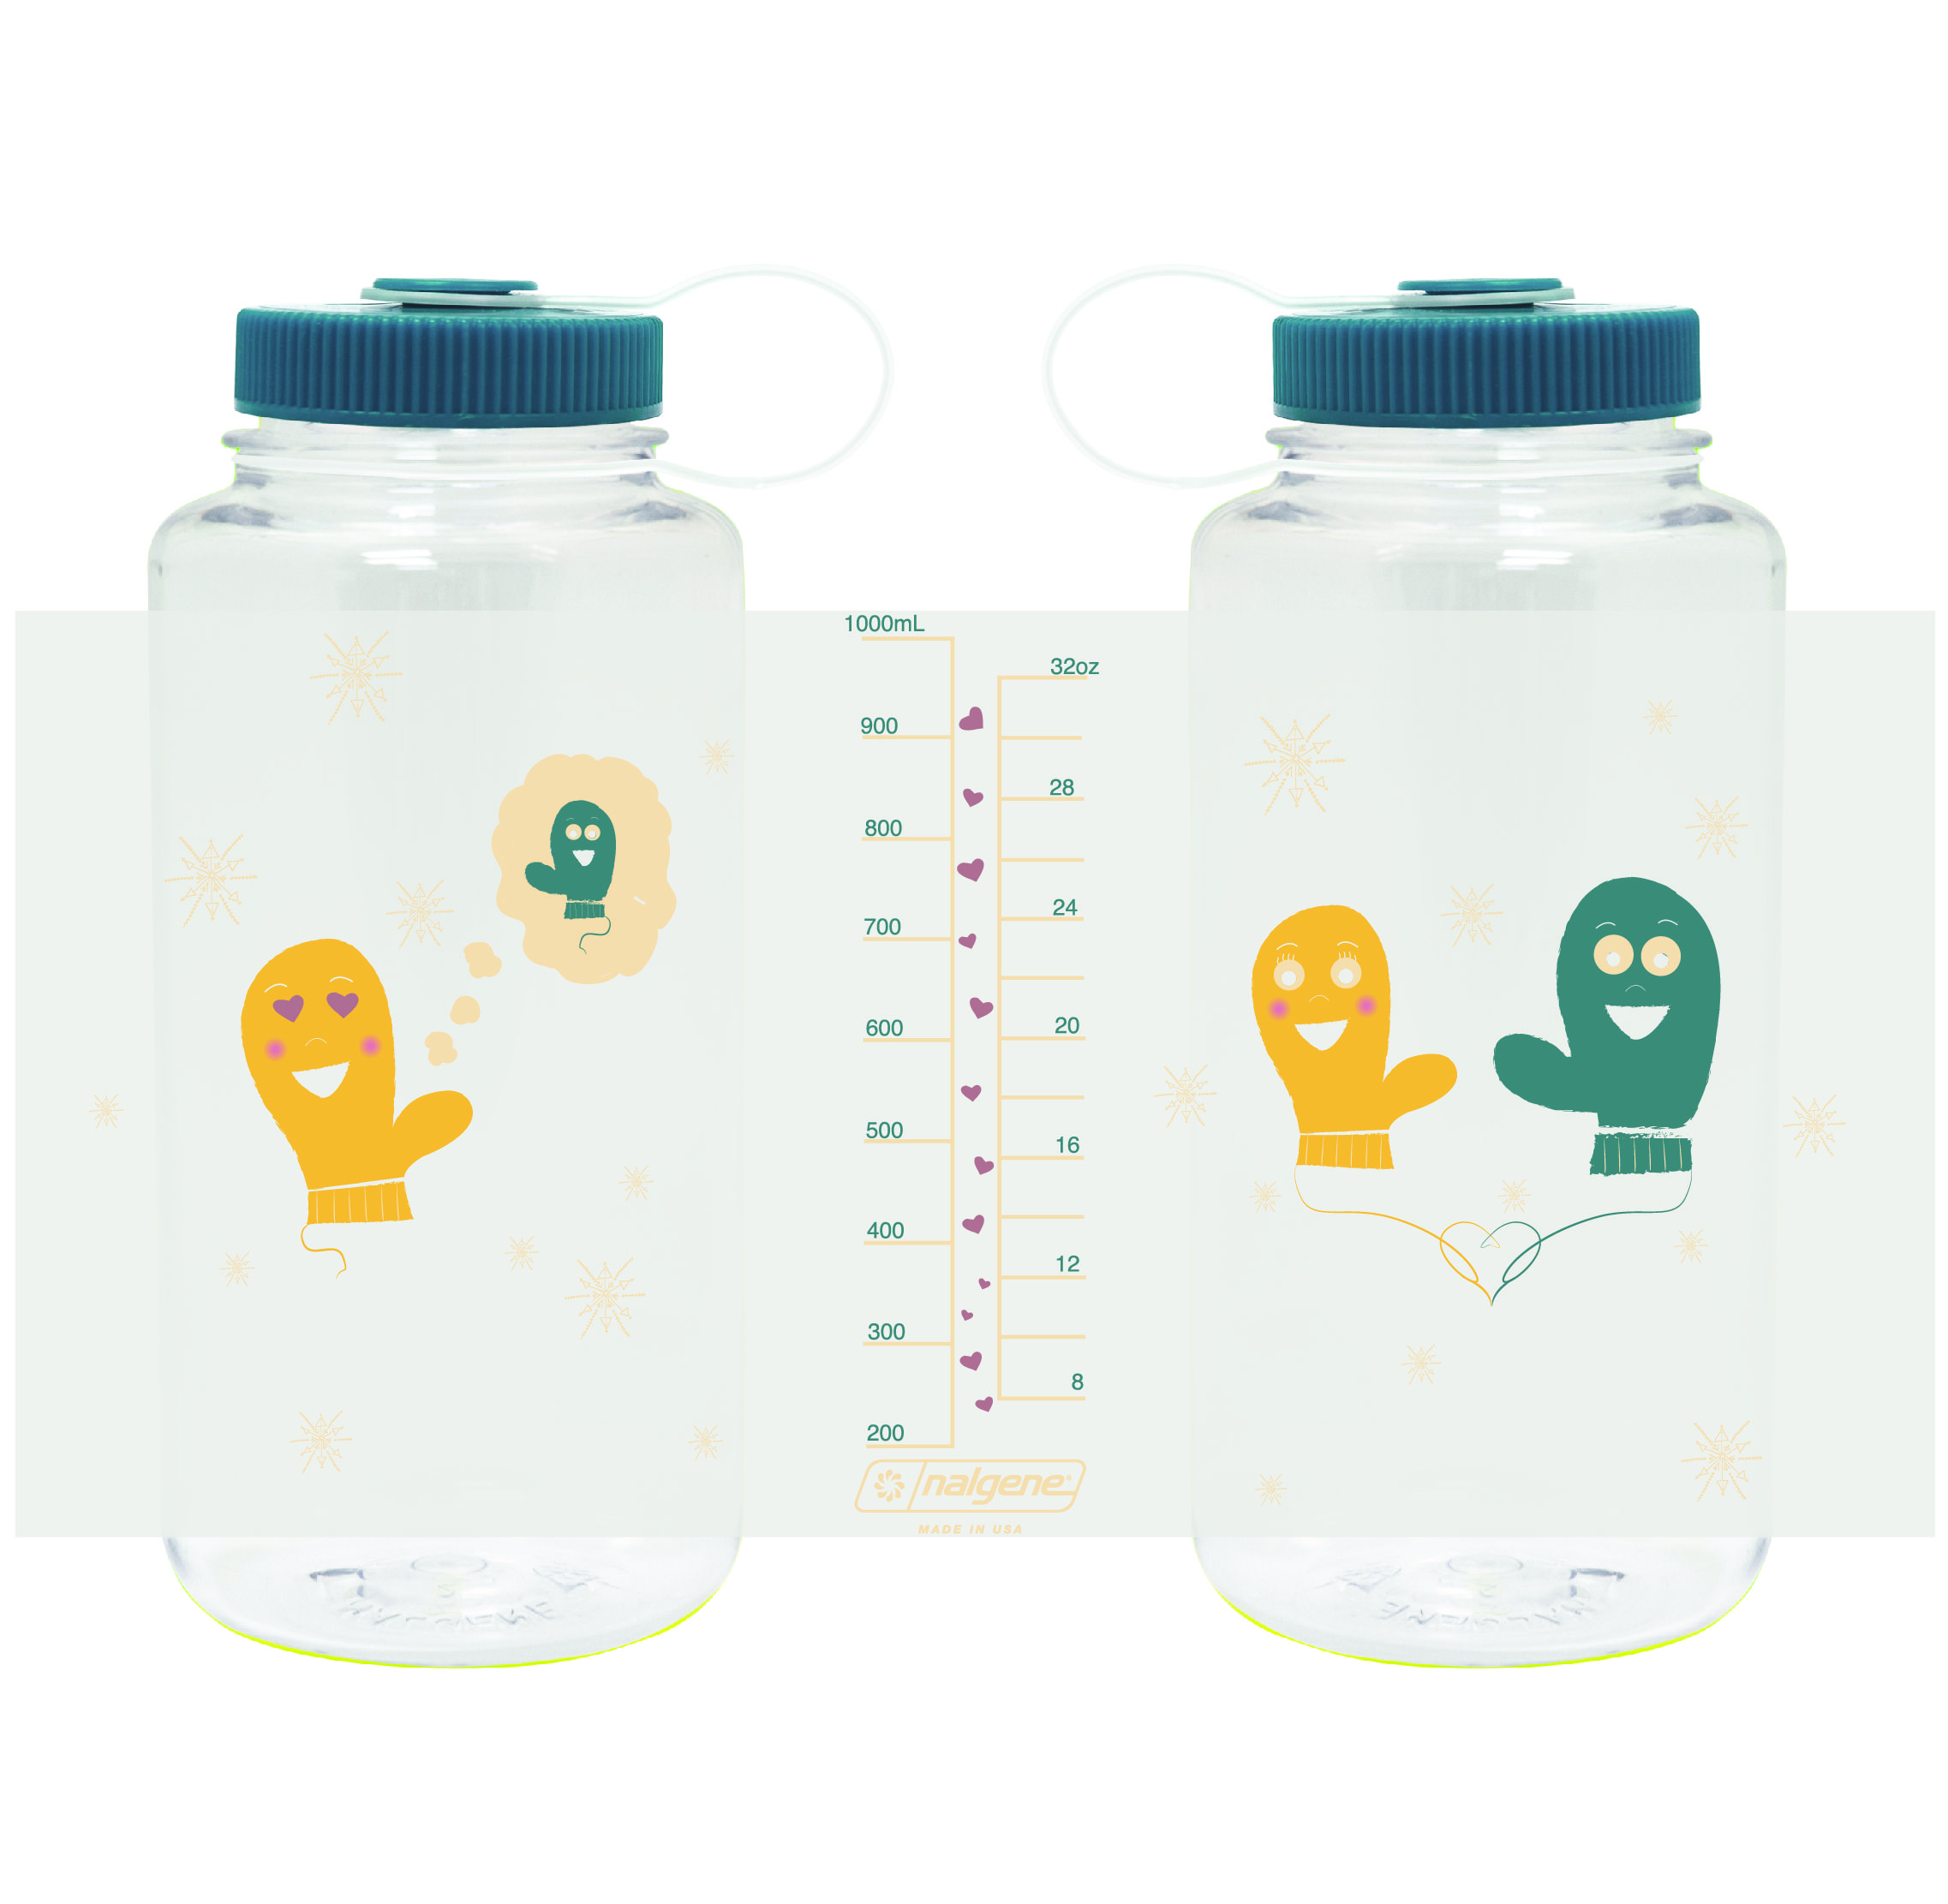 """Available on www.nalgene.com on Nov. 1, 2015 for $10.99. Exclusive 2015 Holiday Bottle, """"Smitten Mittens."""""""